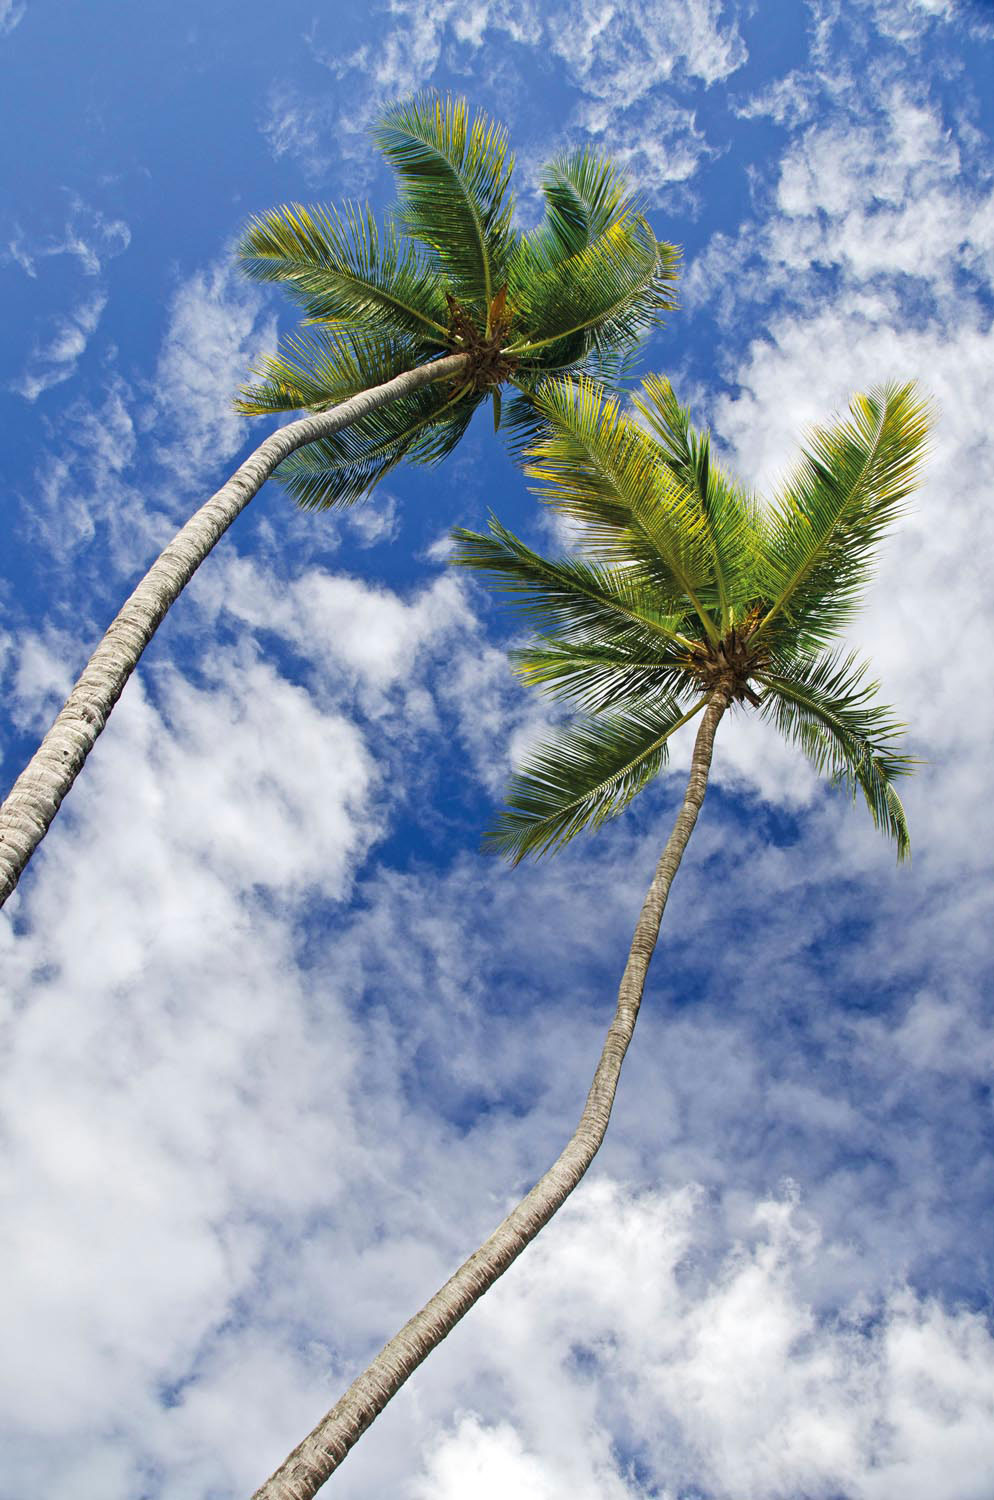 . . . and up at the brilliant blue sky. Photo by F1online Digitale Bildagentur GMBH/Alamy Stock Photo